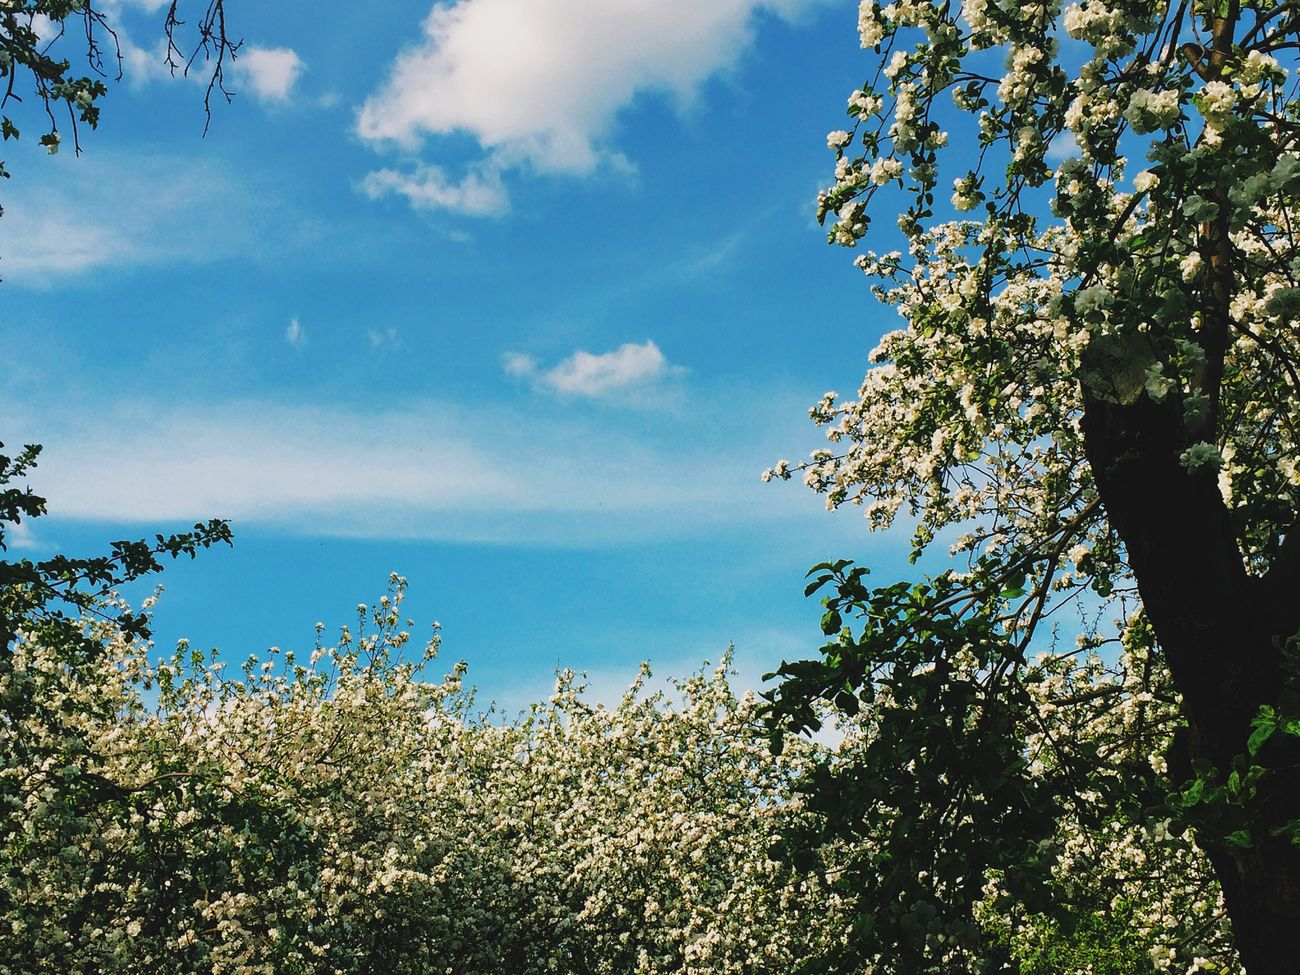 Secret Garden Walking Around Traveling Flowers Enjoying The Sun Sky Collection Blue Sky Moscow Park Relaxing